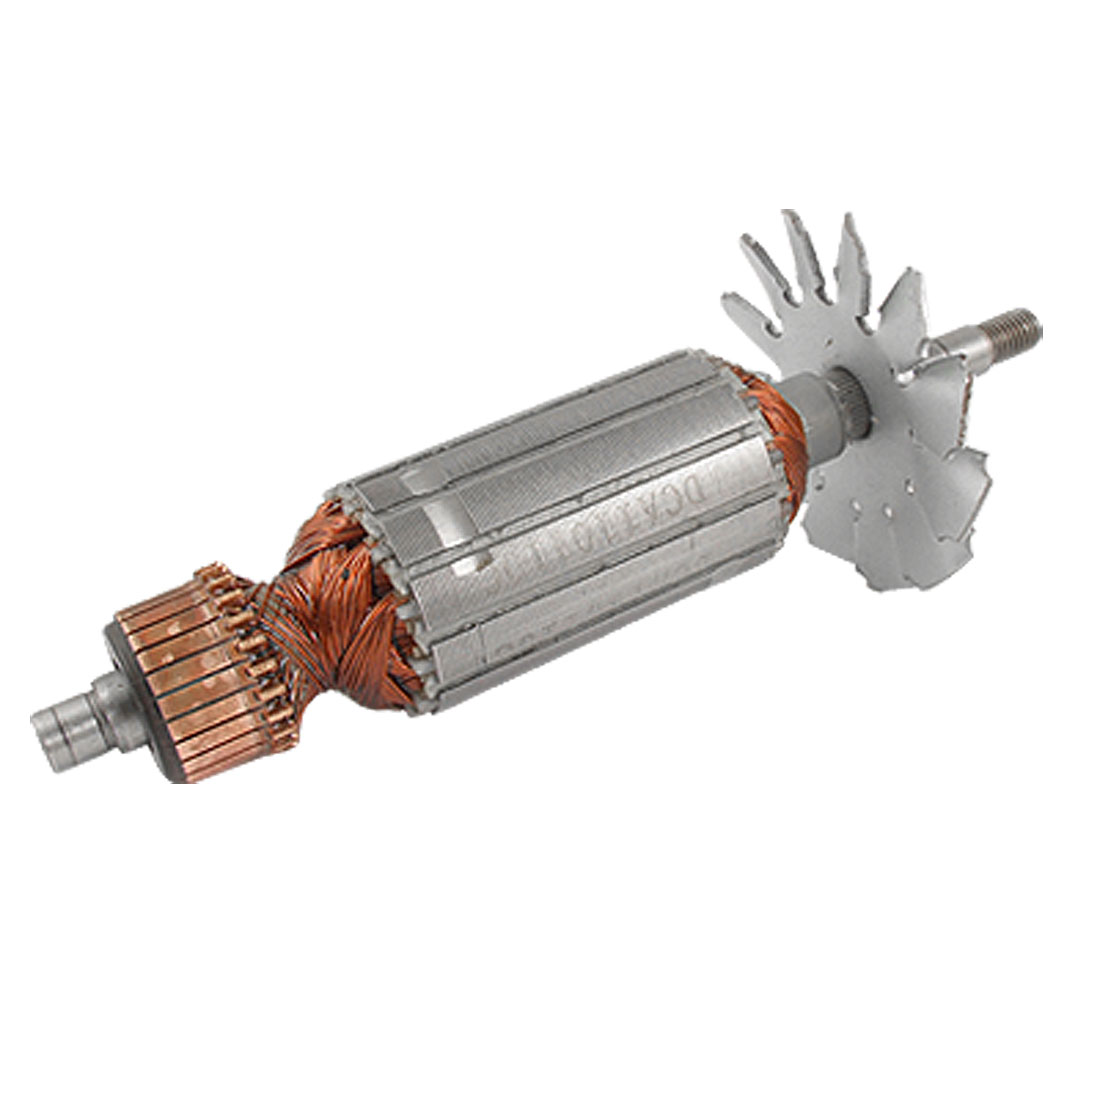 AC 220V 13000 RPM Electric Motor Rotor for Angle Grinder G10SF